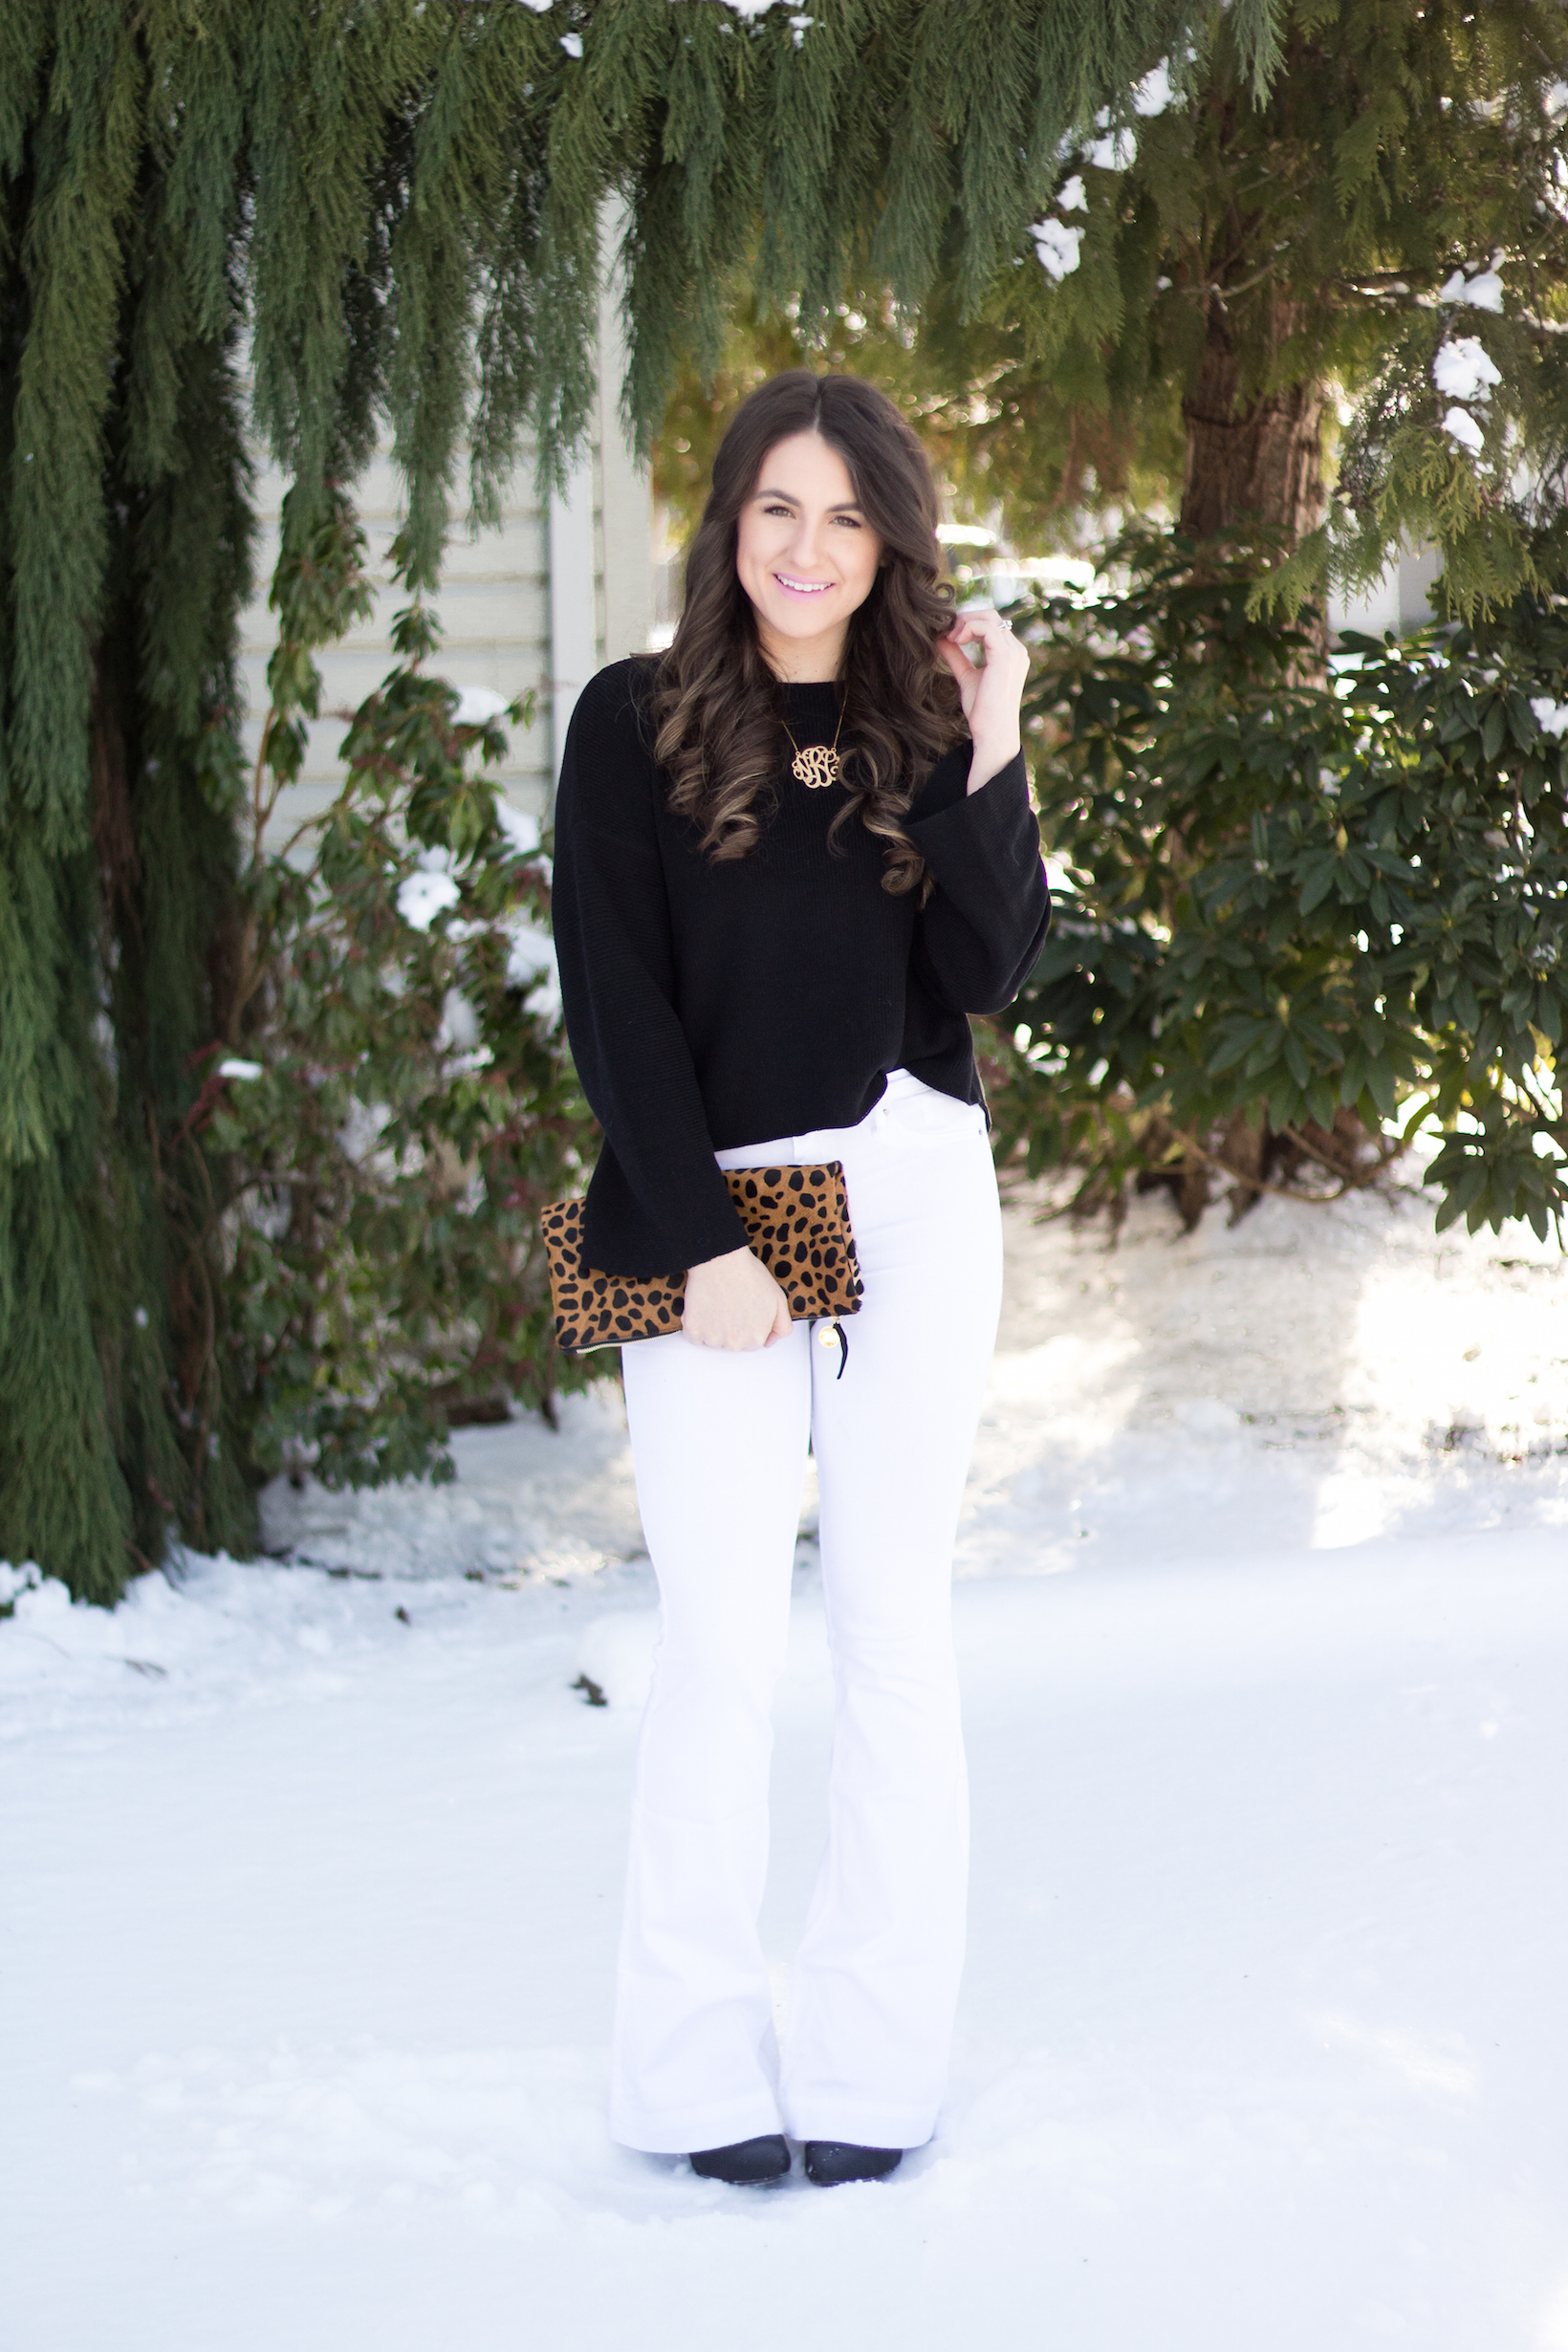 Winter white flares with black flared sleeve sweater for styling flares with confidence.